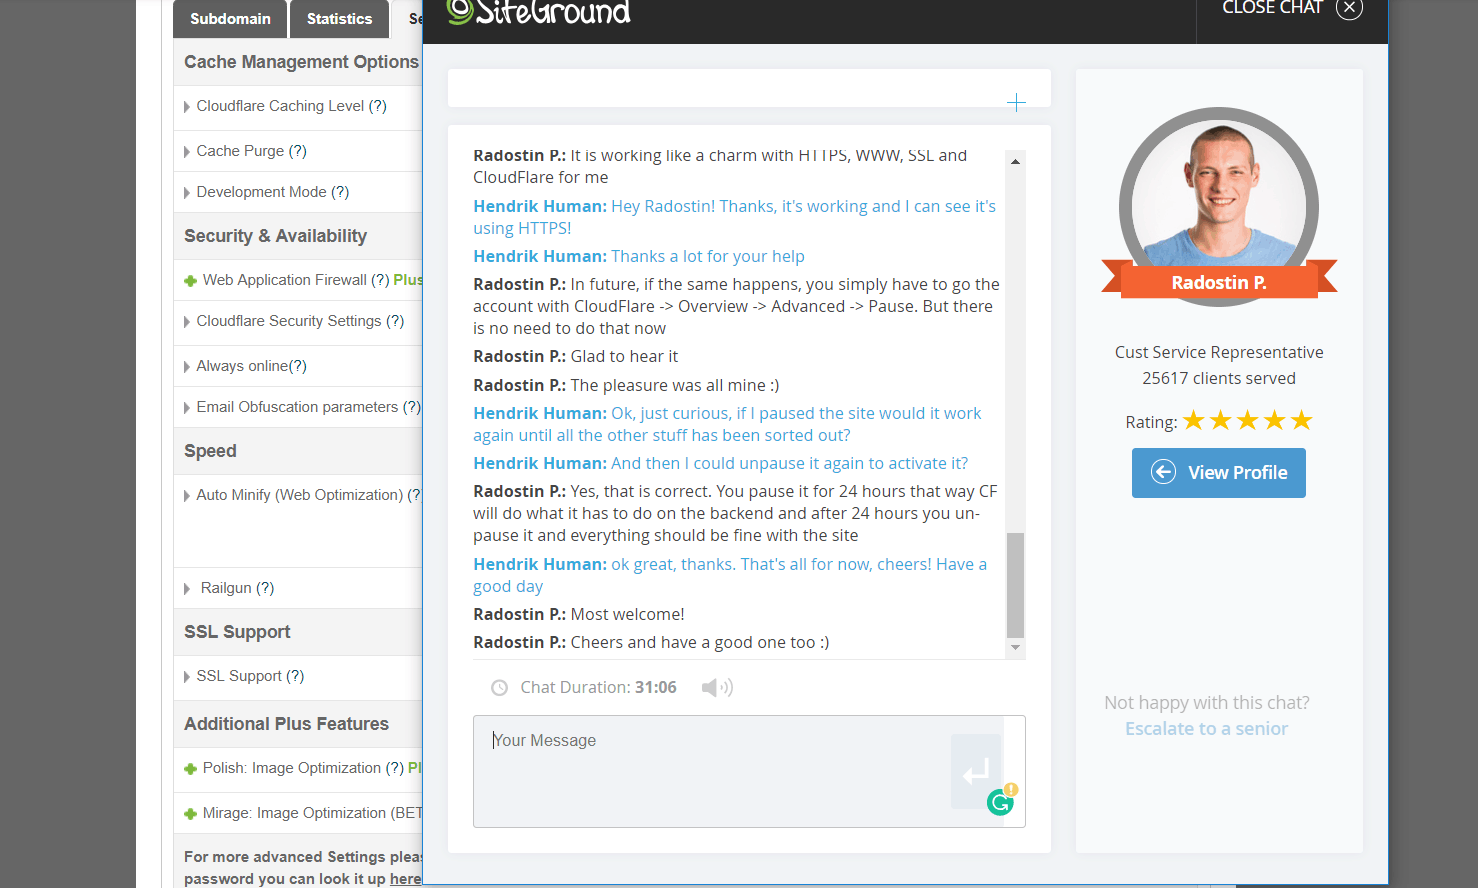 SiteGround Support Live Chat